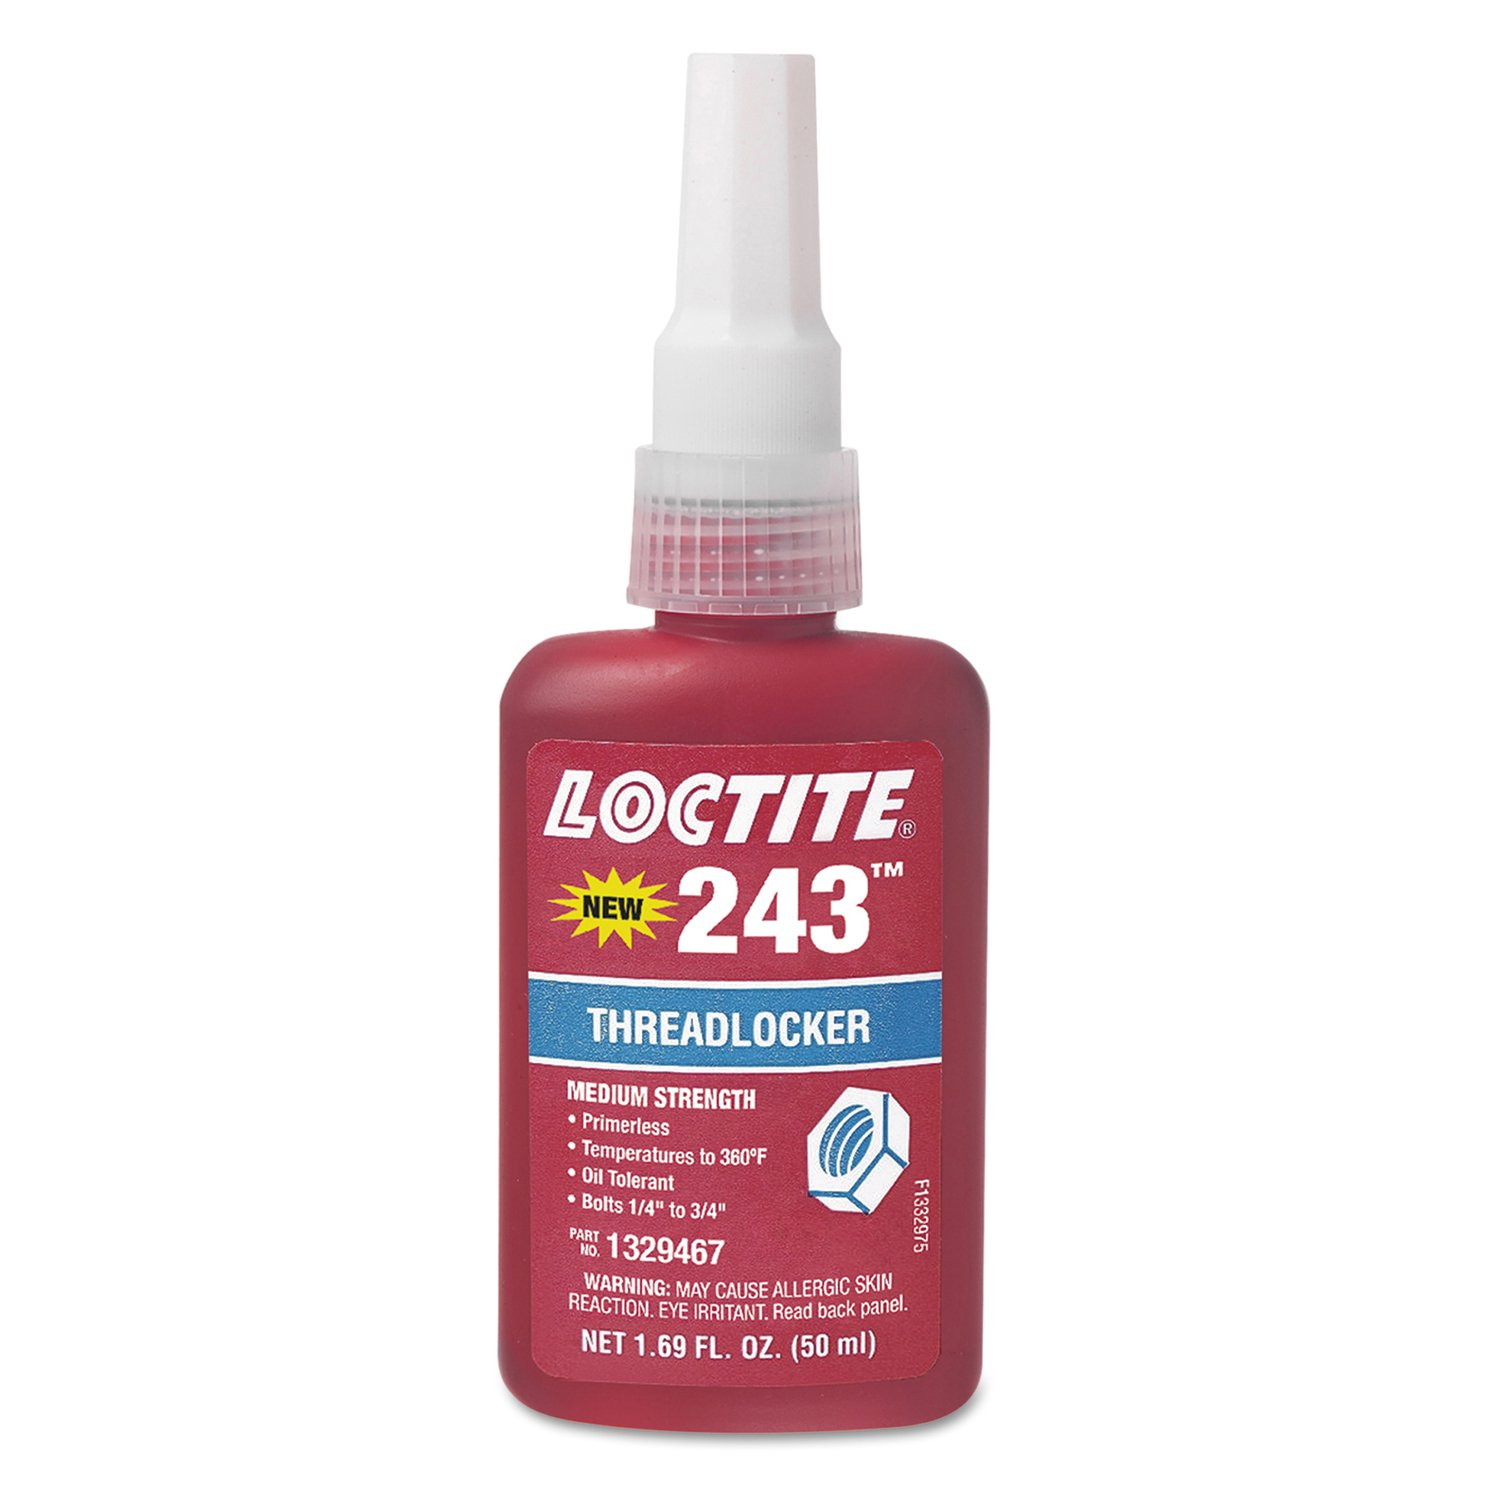 Loctite 1329467 243 Blue Medium Strength Threadlockers, 1.69 oz., 50 mL, 3/4'' Thread